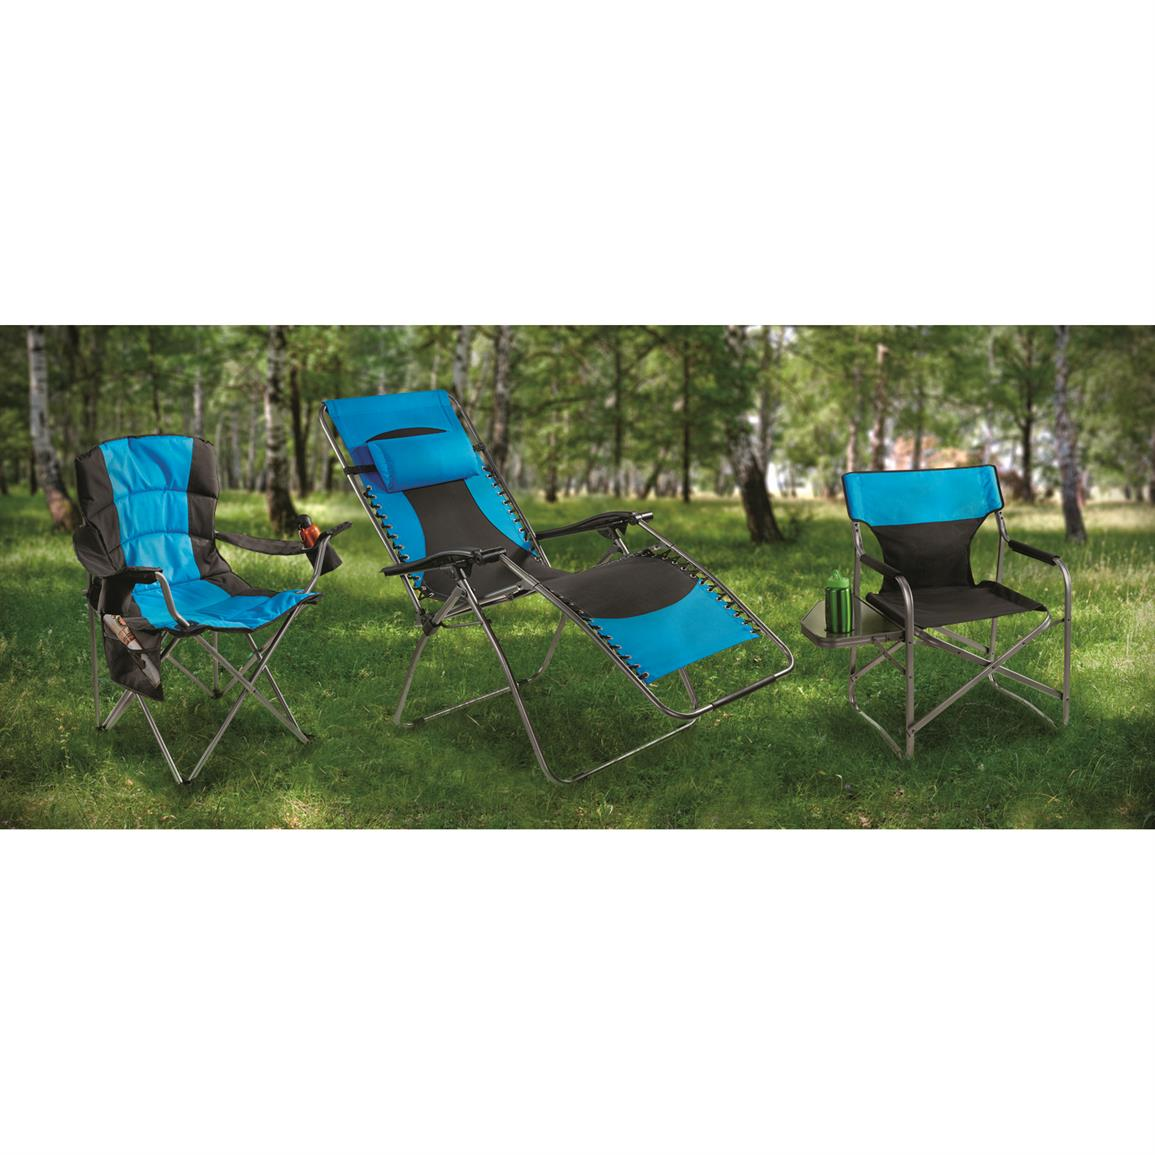 Guide Gear Chairs, Blue